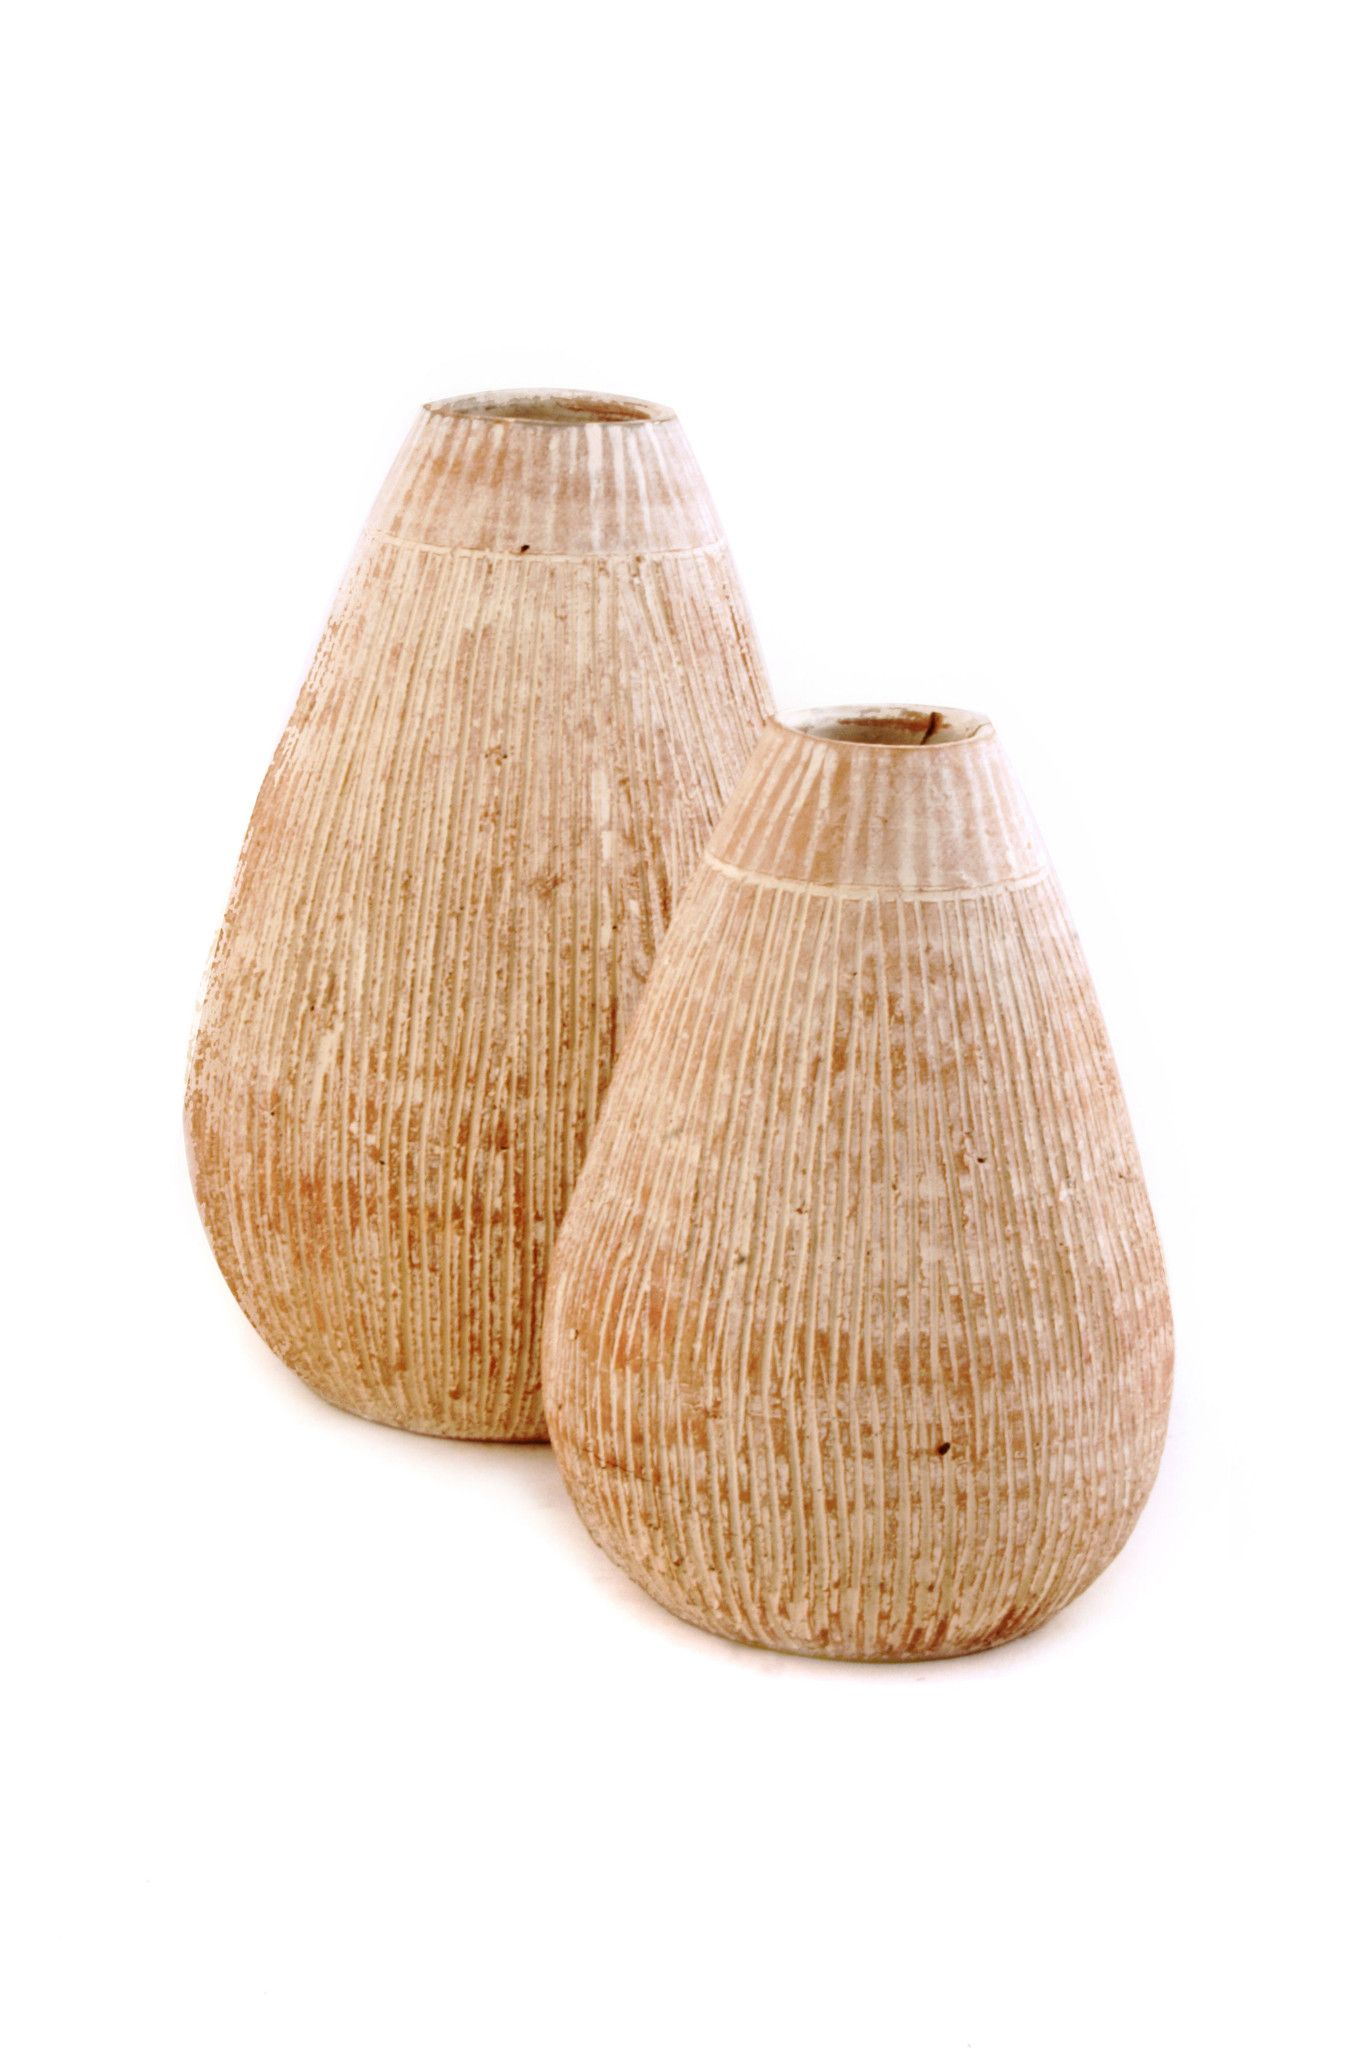 Coconut Shell Pattern Ceramic Vases